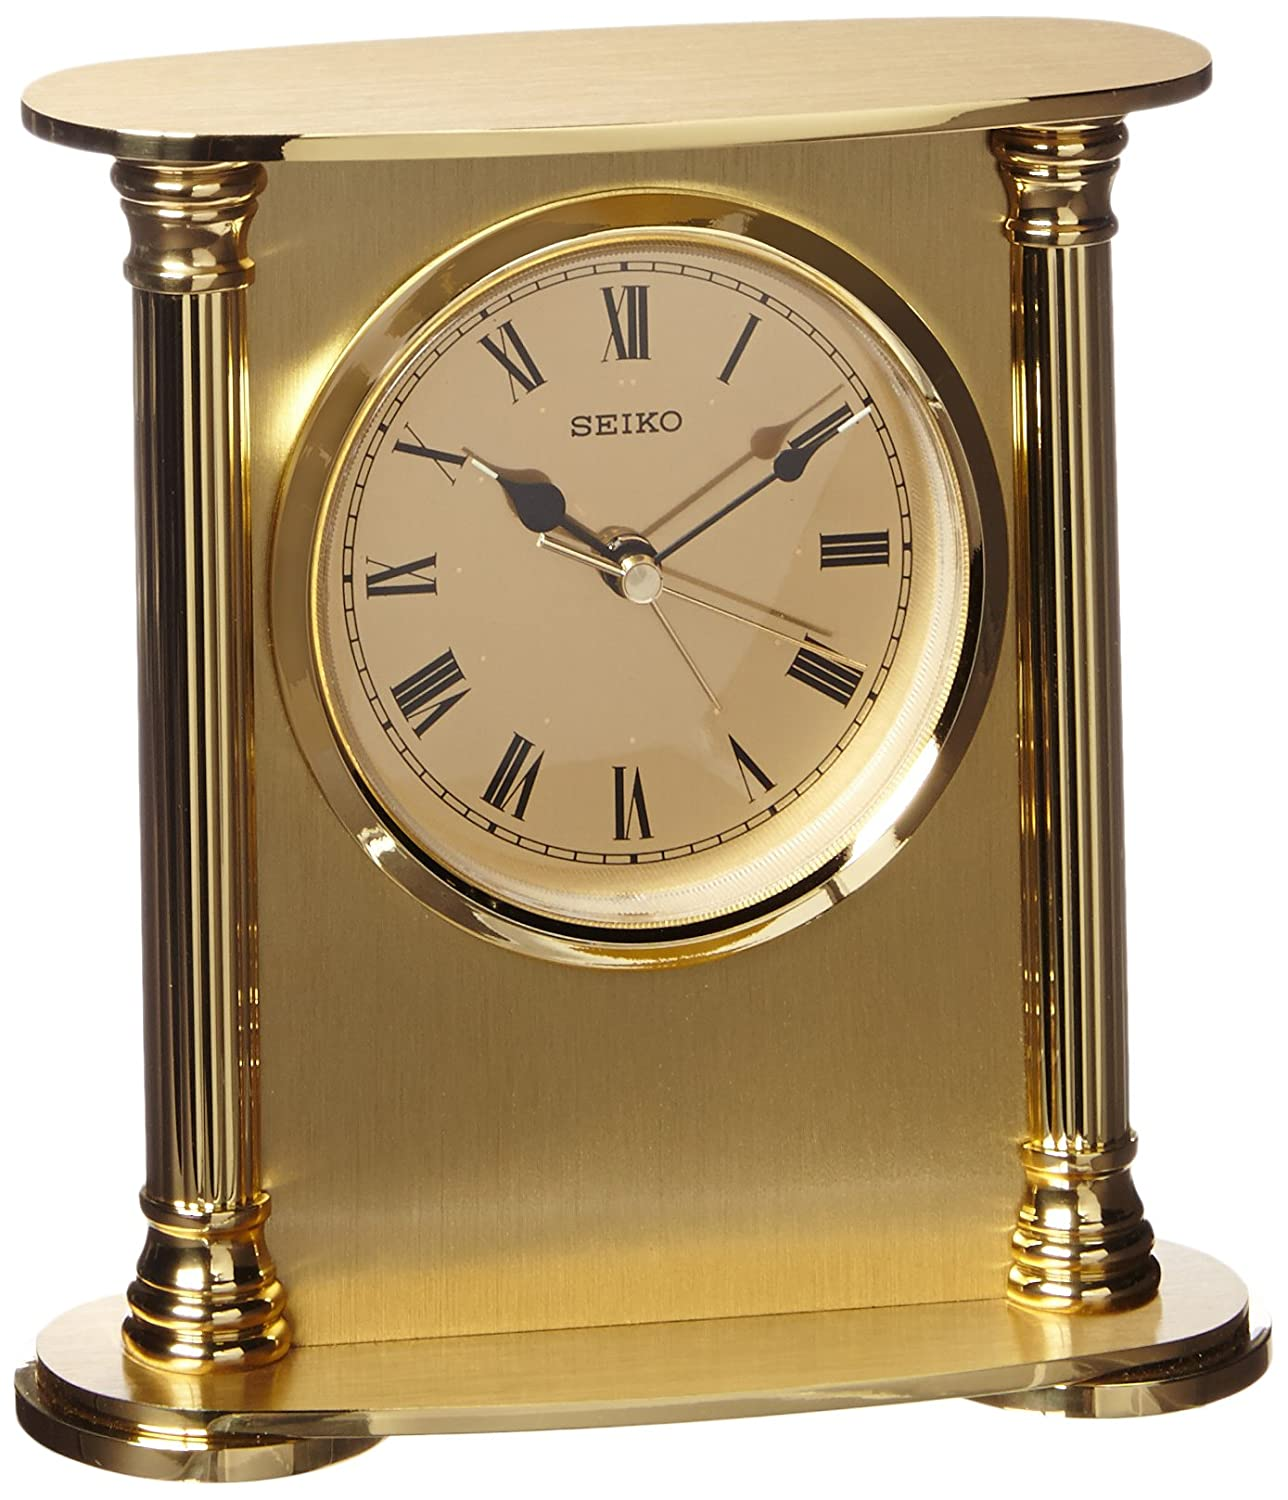 Wonderful Amazon.com: Seiko Desk And Table Alarm Clock Gold Tone Solid Brass Case:  Watches